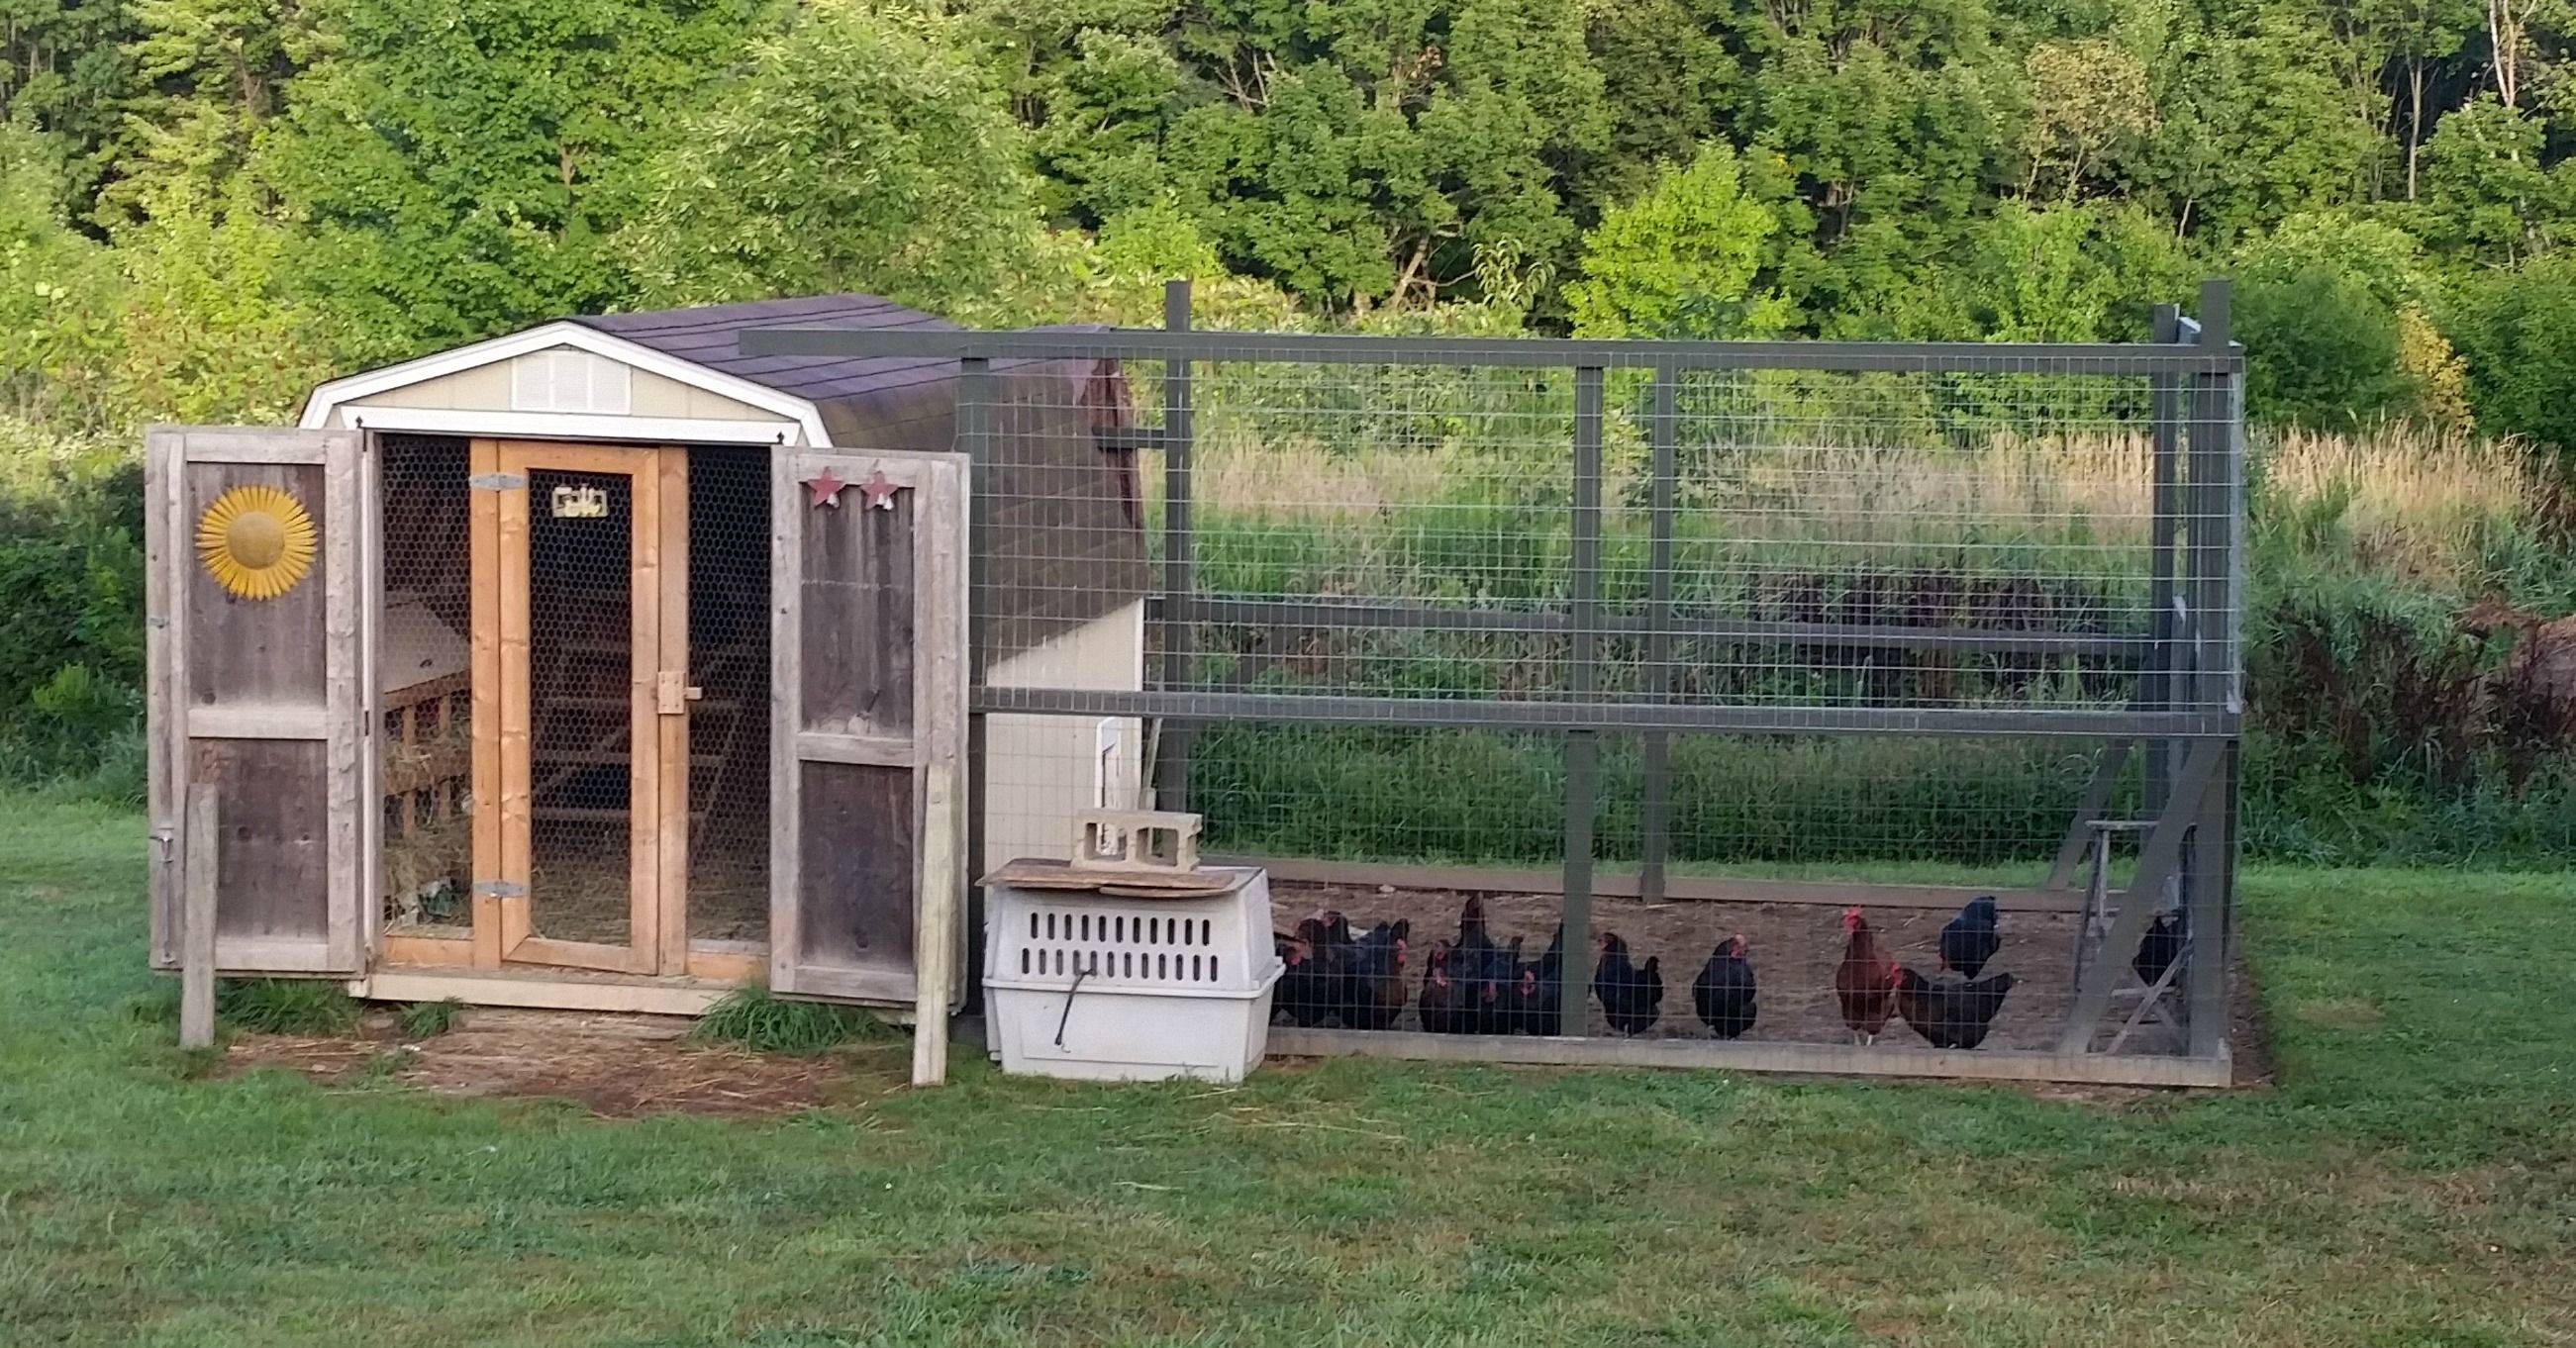 Here Is A Step By Step Guide To Converting A Shed To A Coop Urban Chicken Farming Chickens Backyard Diy Chicken Coop